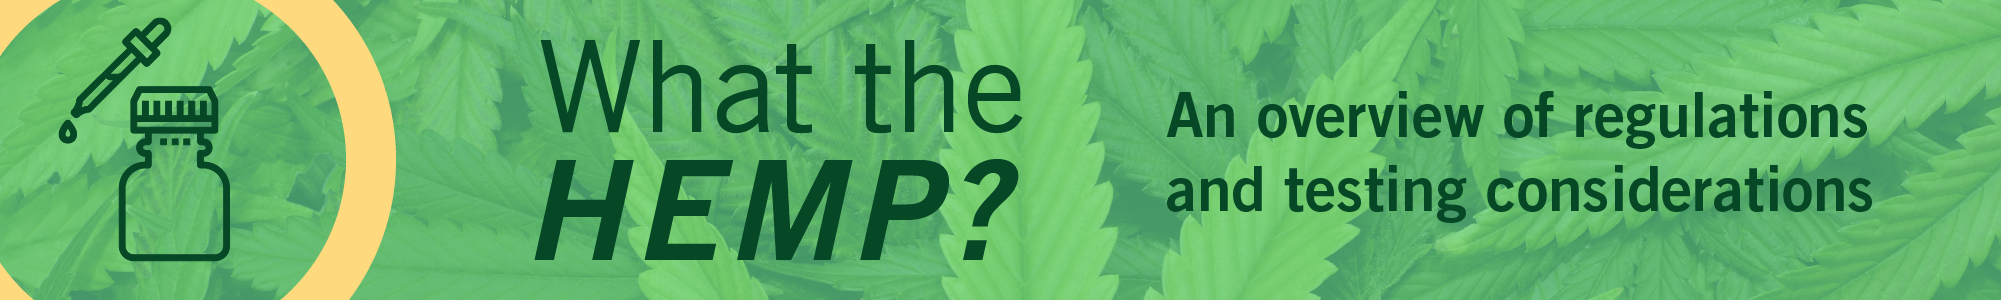 What the Hemp? An overview of regulations and testing considerations